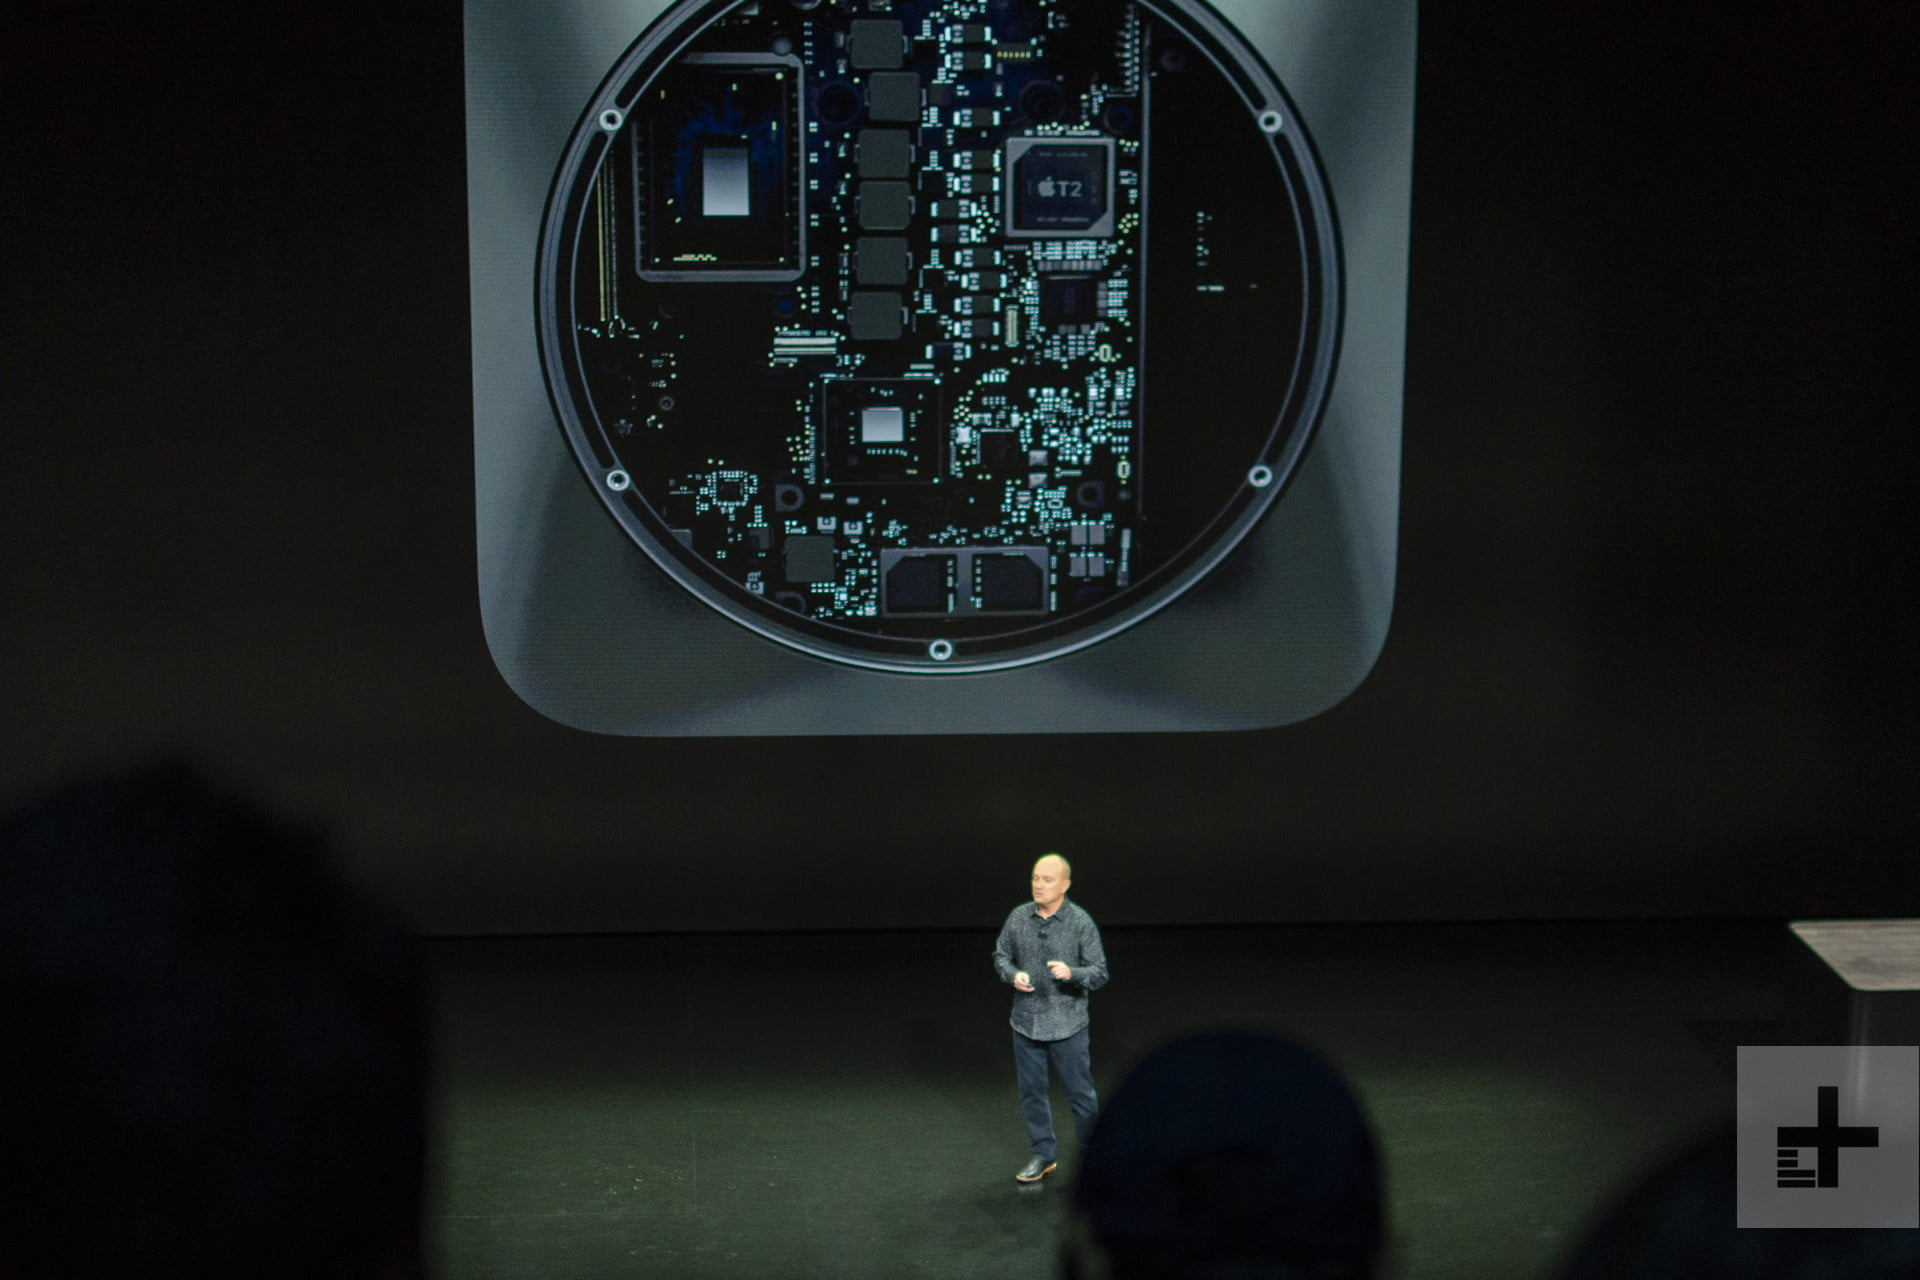 Mac Mini 2018 - Evento Apple Octubre